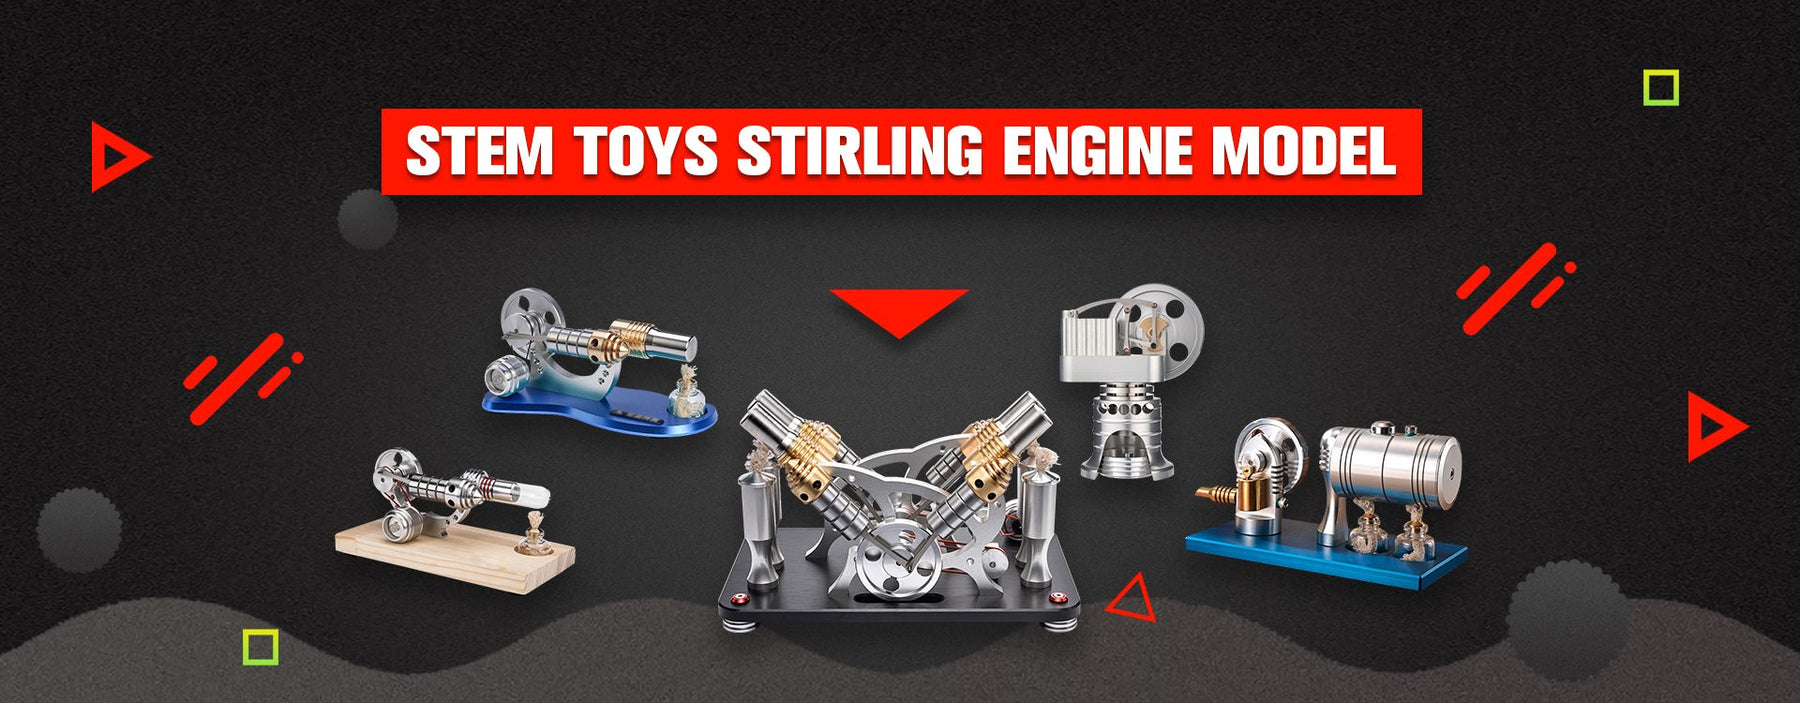 Introduction of Stirling Engine